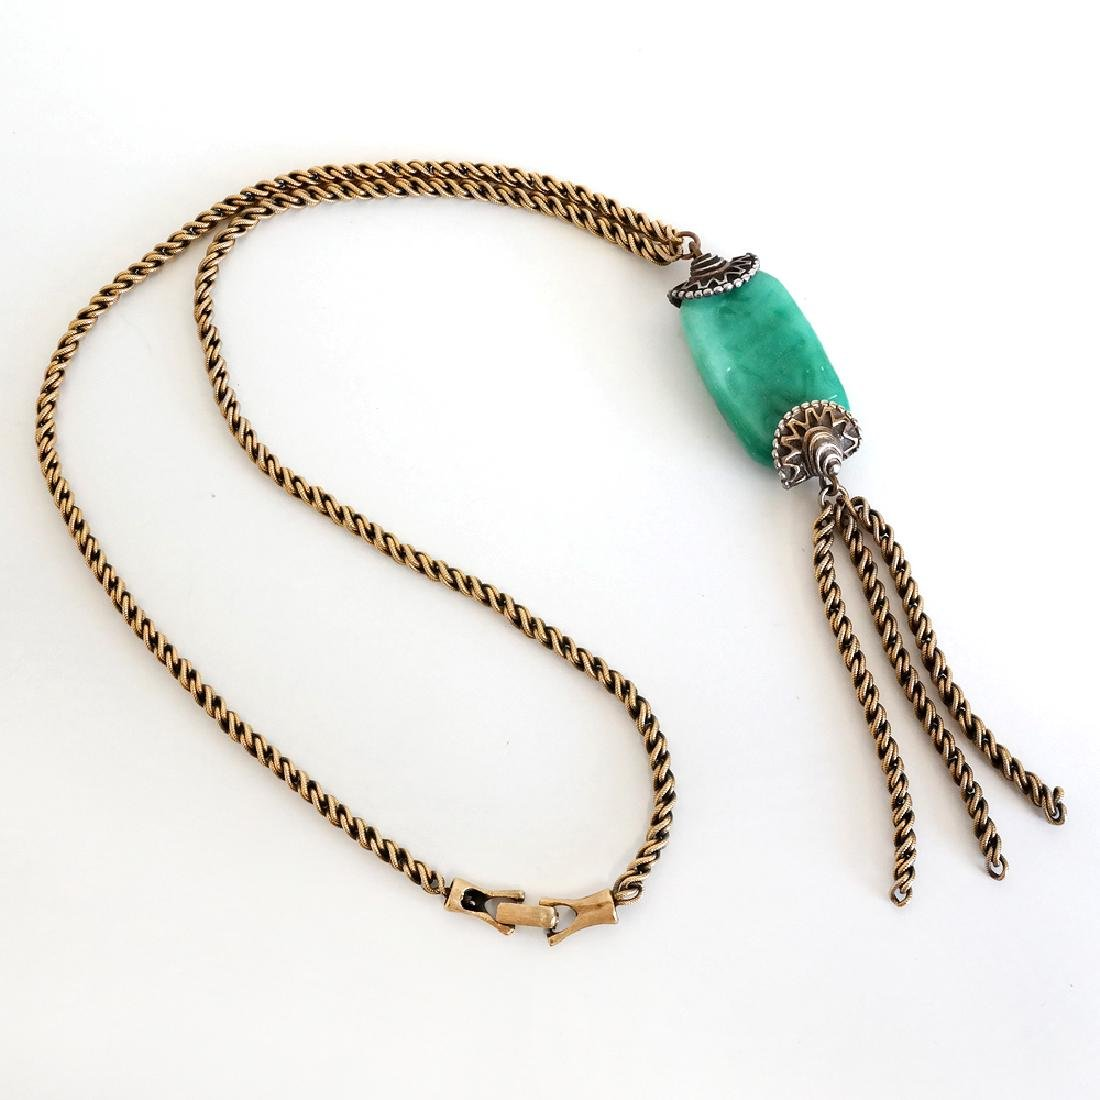 Antique color twisted chain with carved green Jade